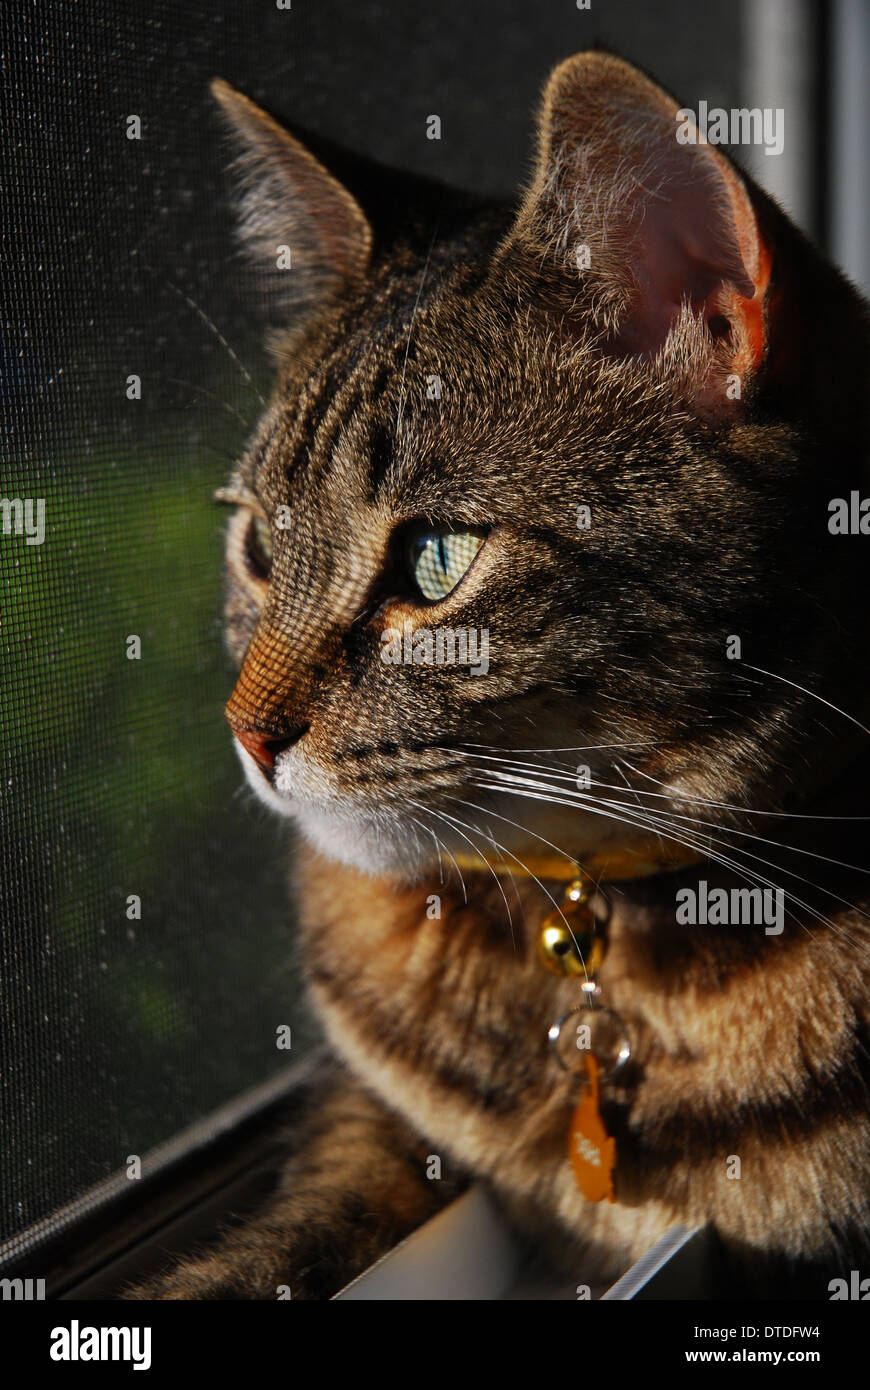 Tabby Bengal mix cat relaxing in window Stock Photo: 66680688 - Alamy